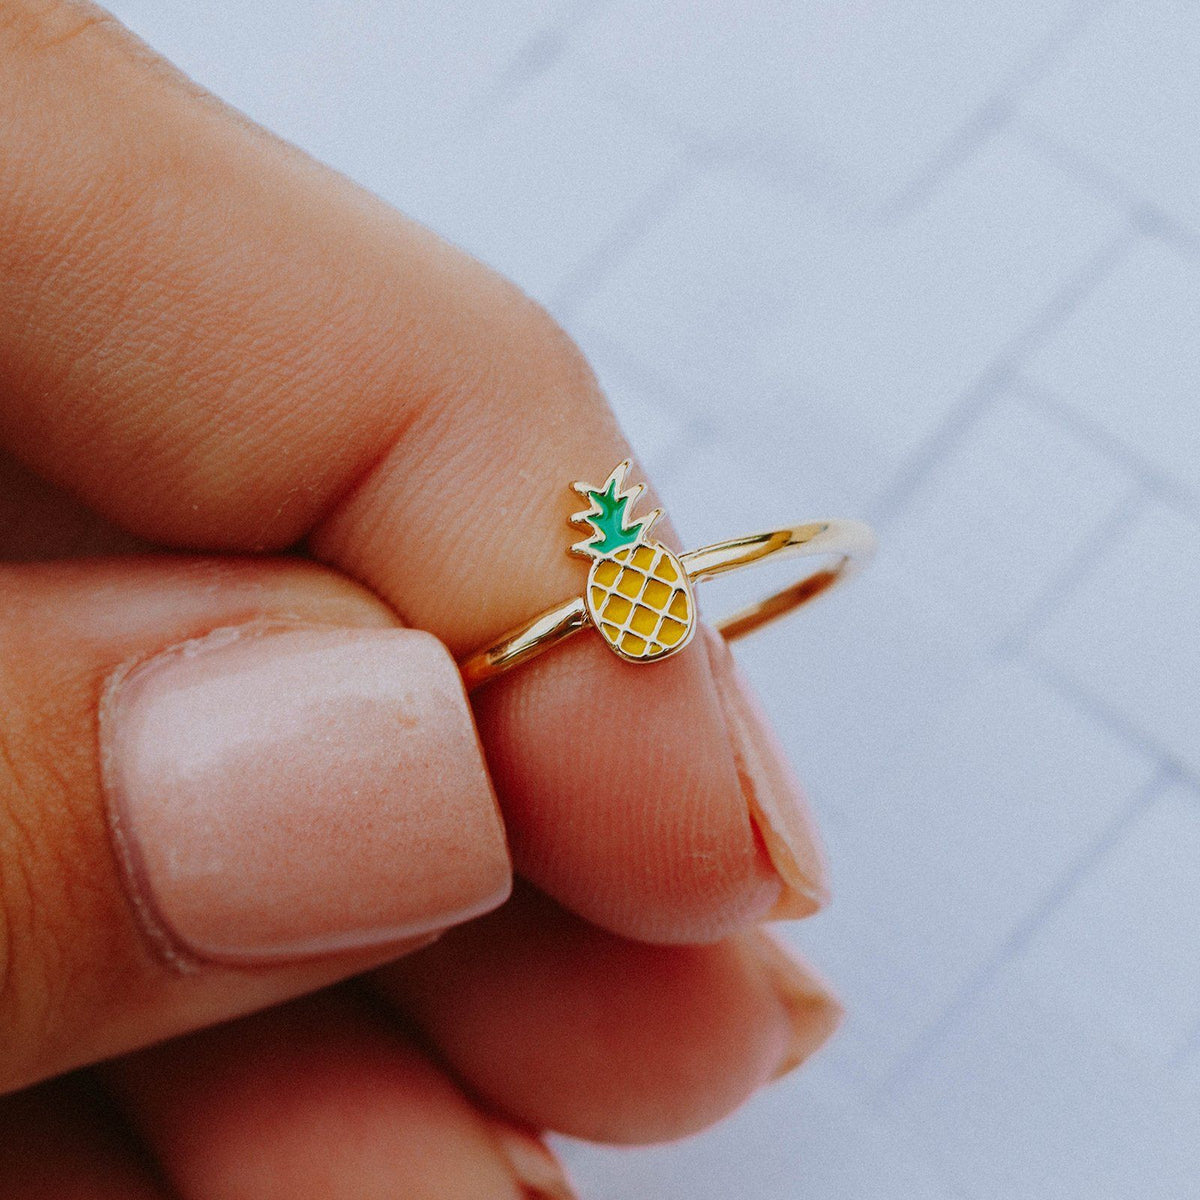 Enamel Pineapple Ring Photo 6